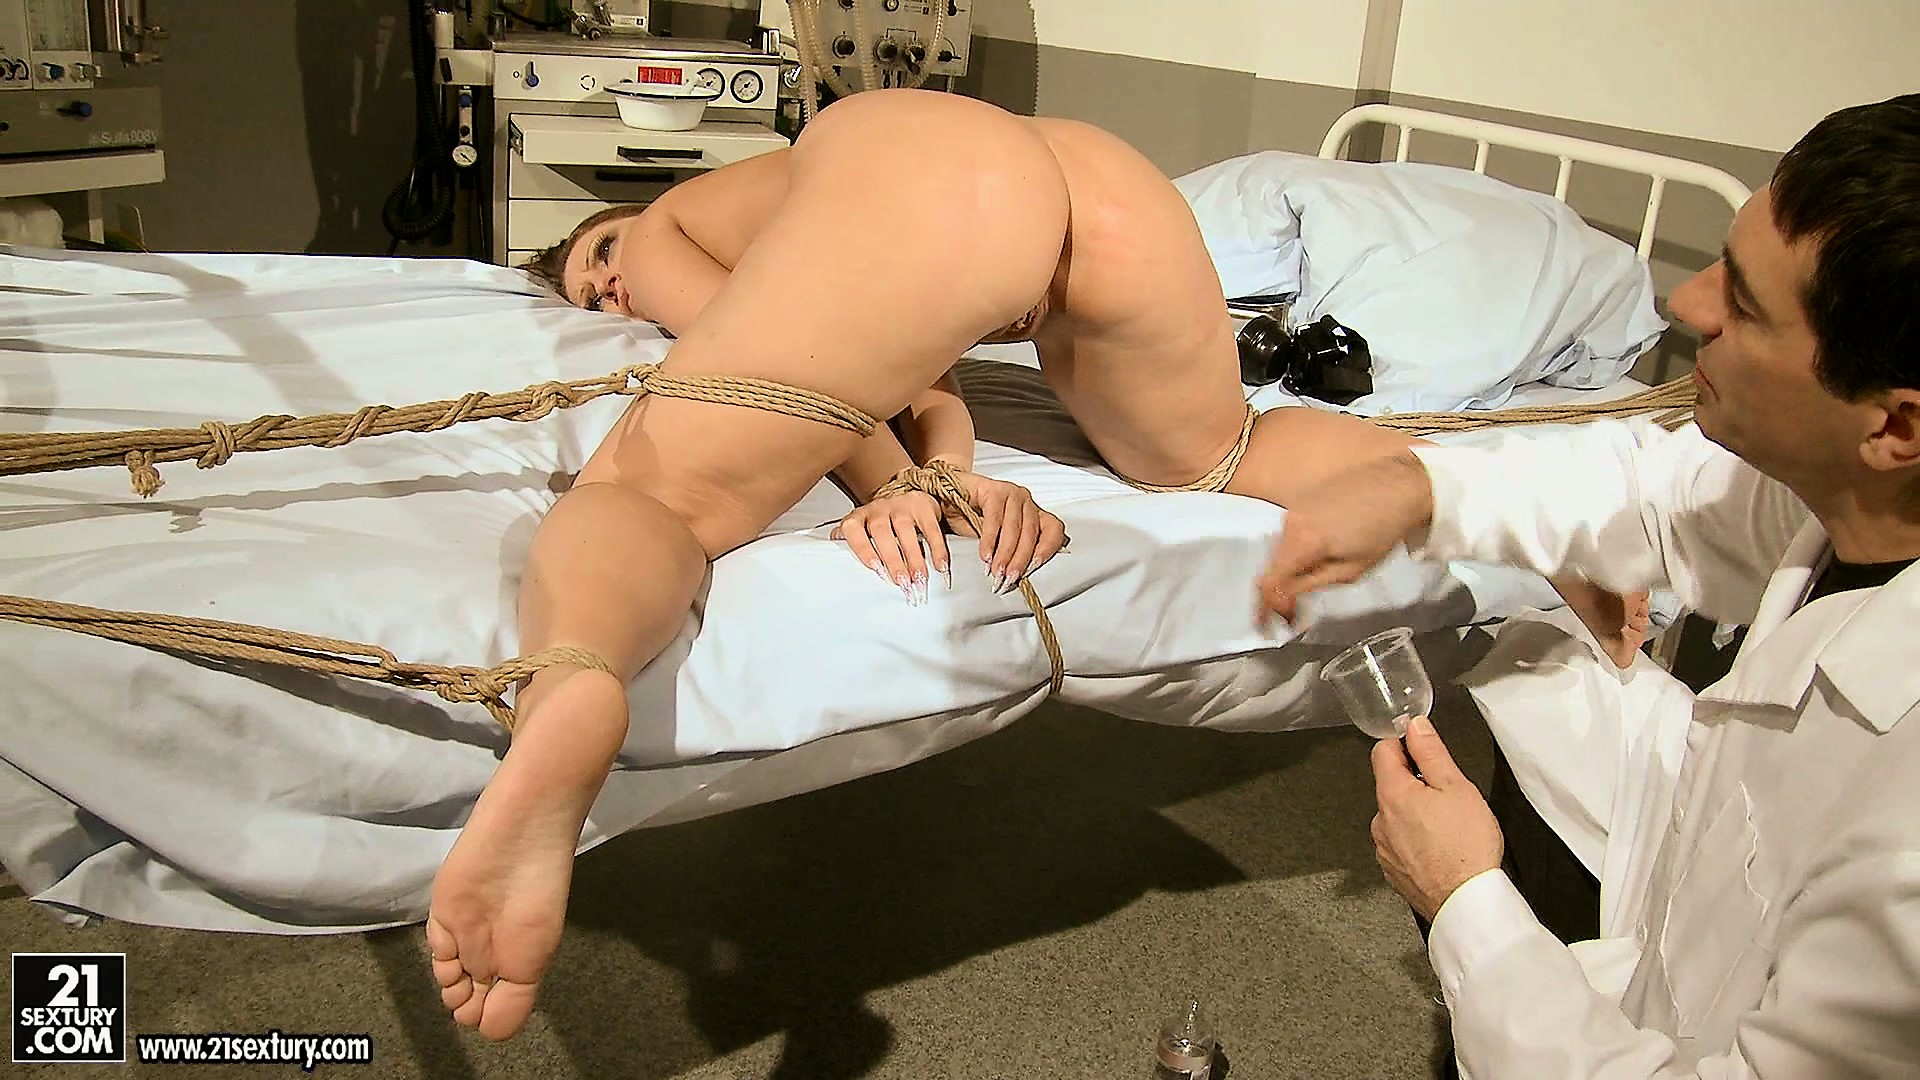 Porno Video of He Uses A Speculum, Pumps Up Her Lips And Uses A Spur On Her